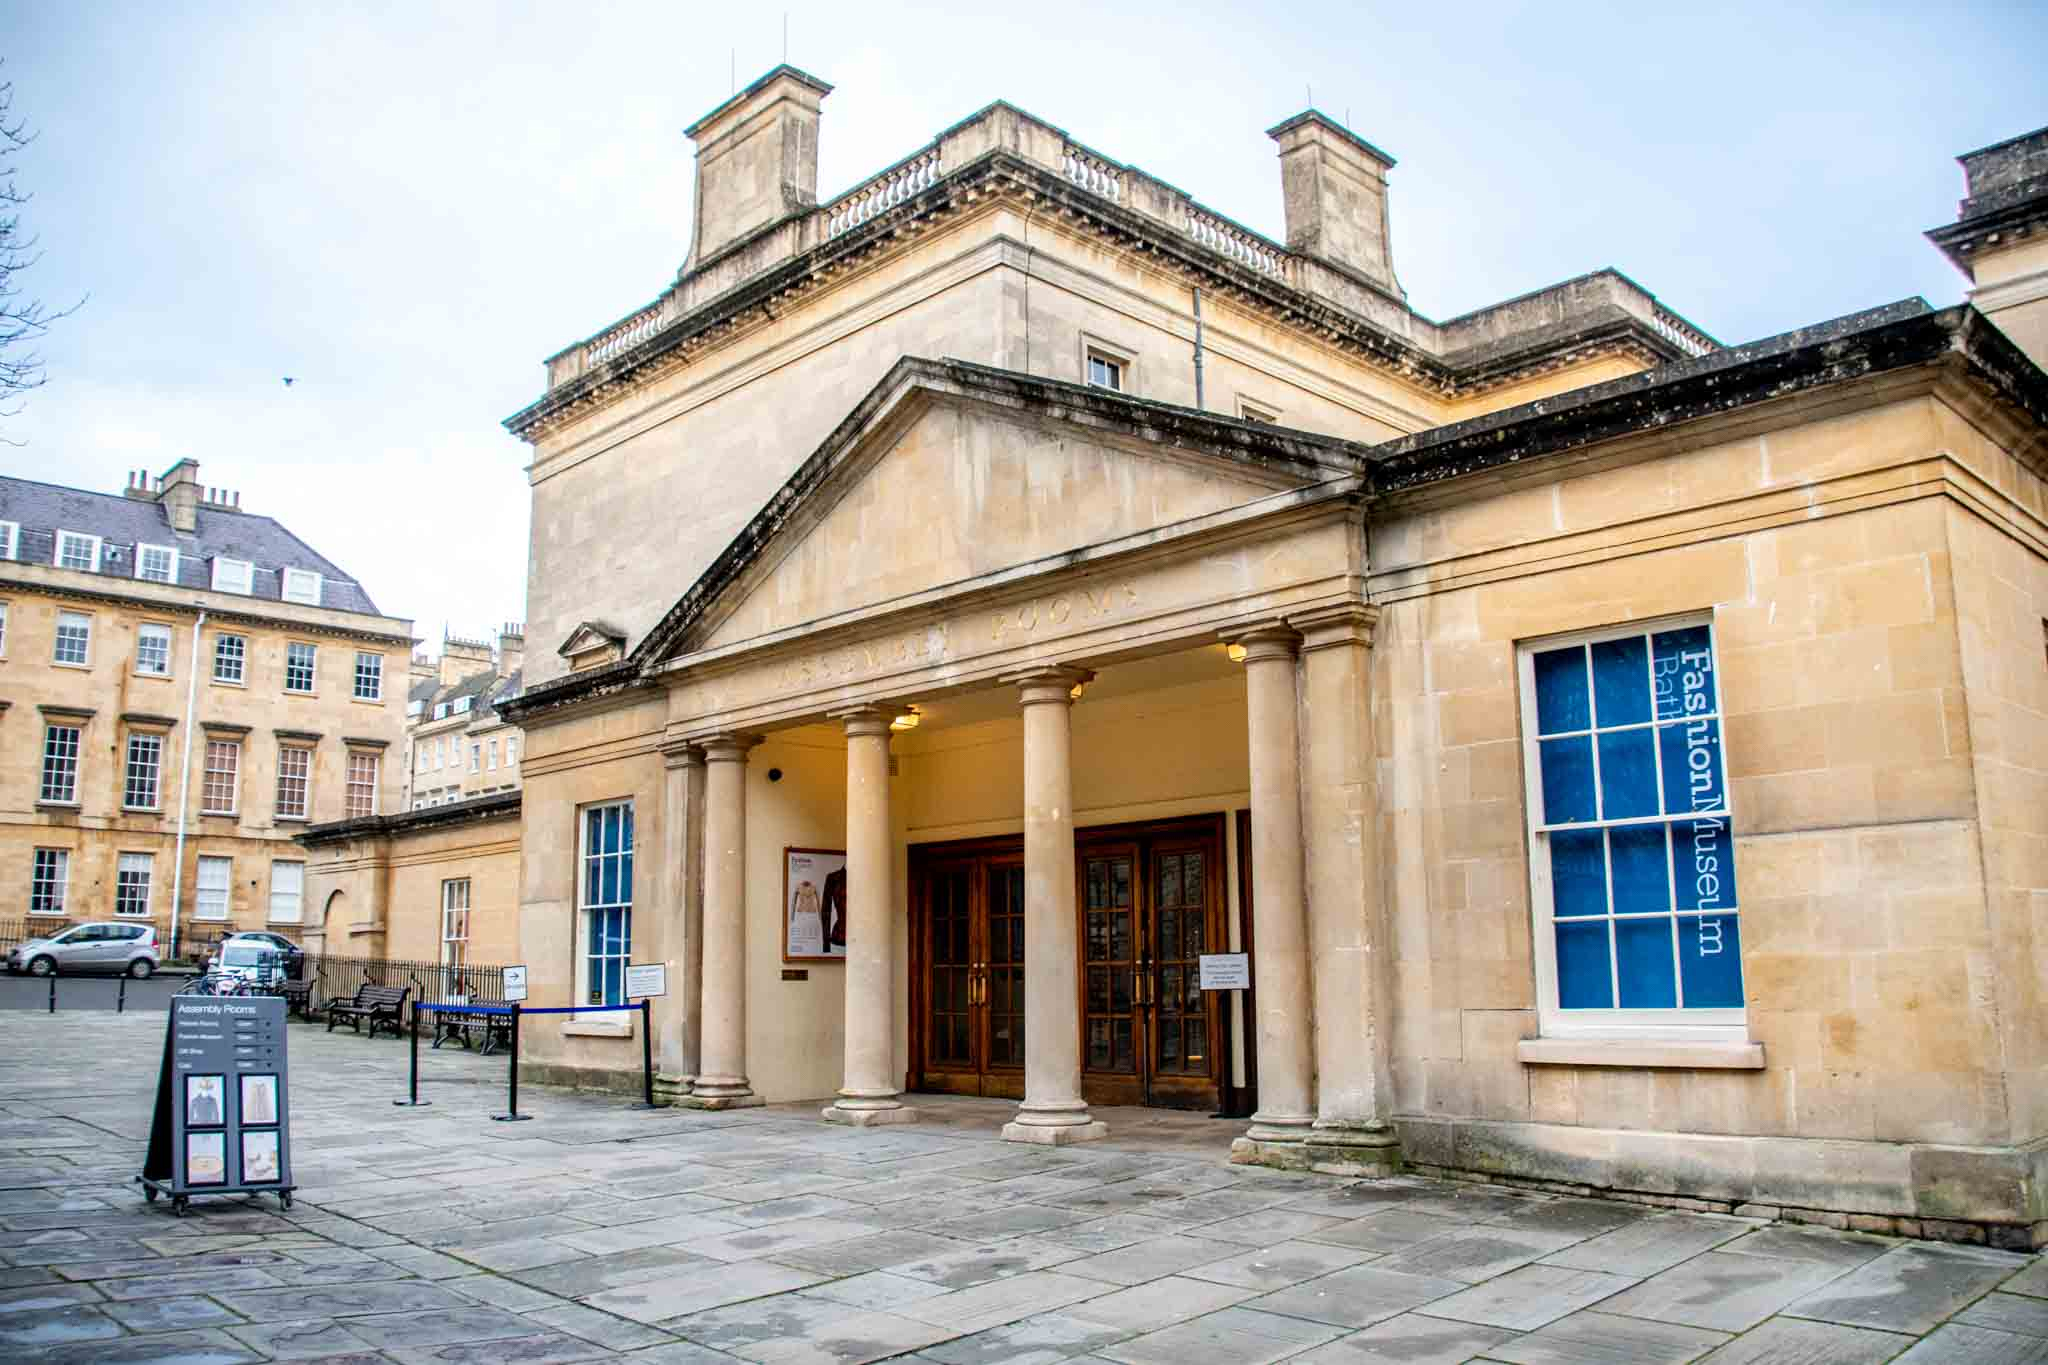 Yellow exterior of the Bath Assembly Rooms, the home of the Fashion Museum